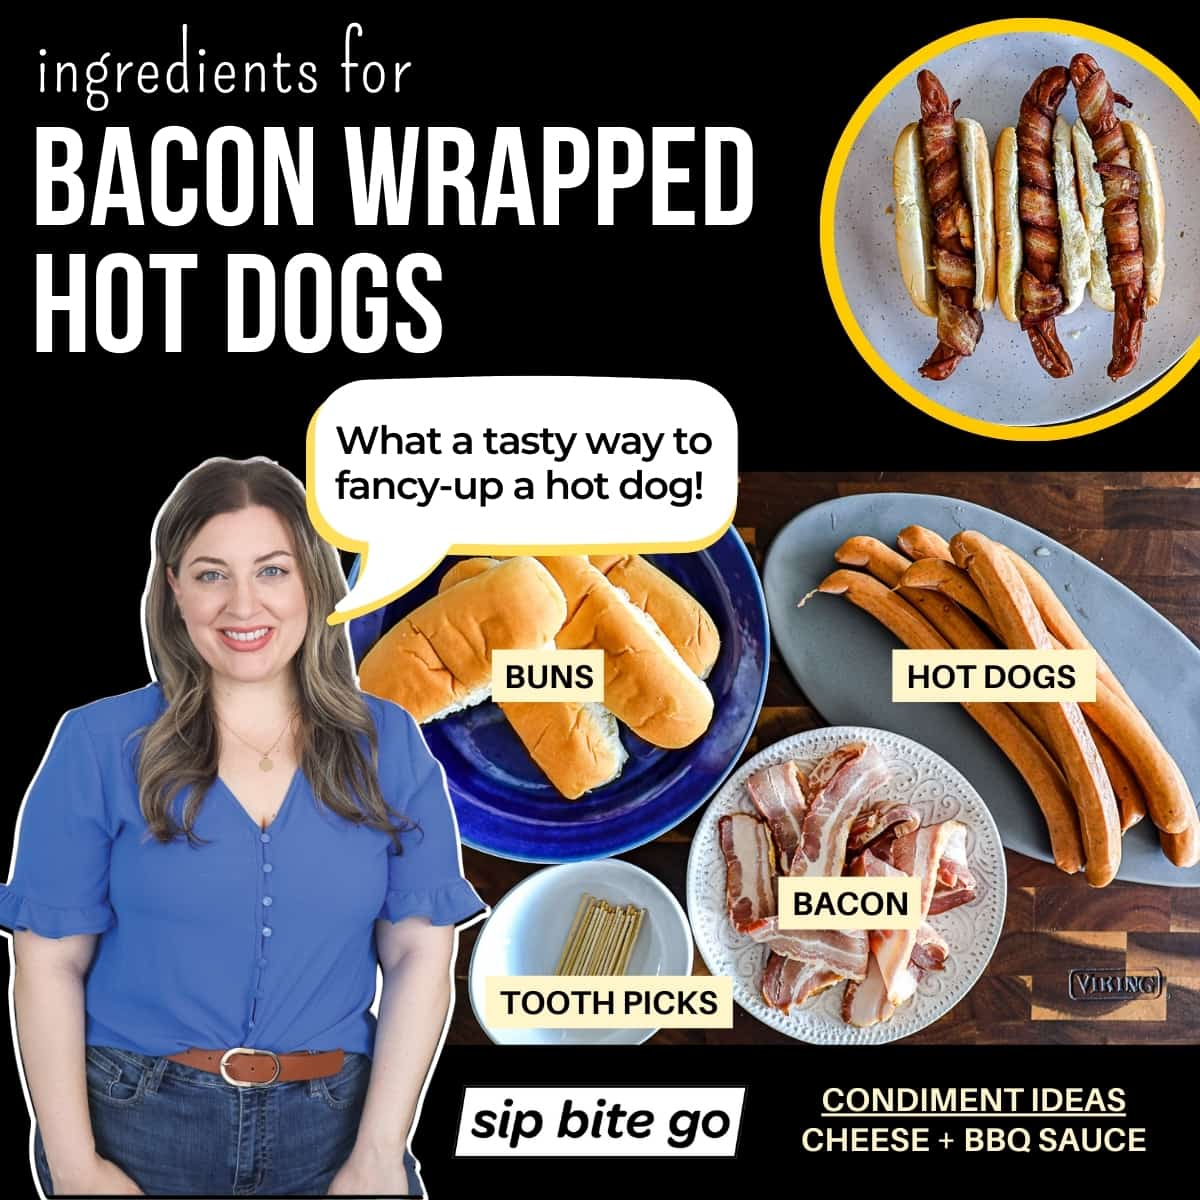 infographic chart with bacon wrapped hot dogs ingredients list with captions.